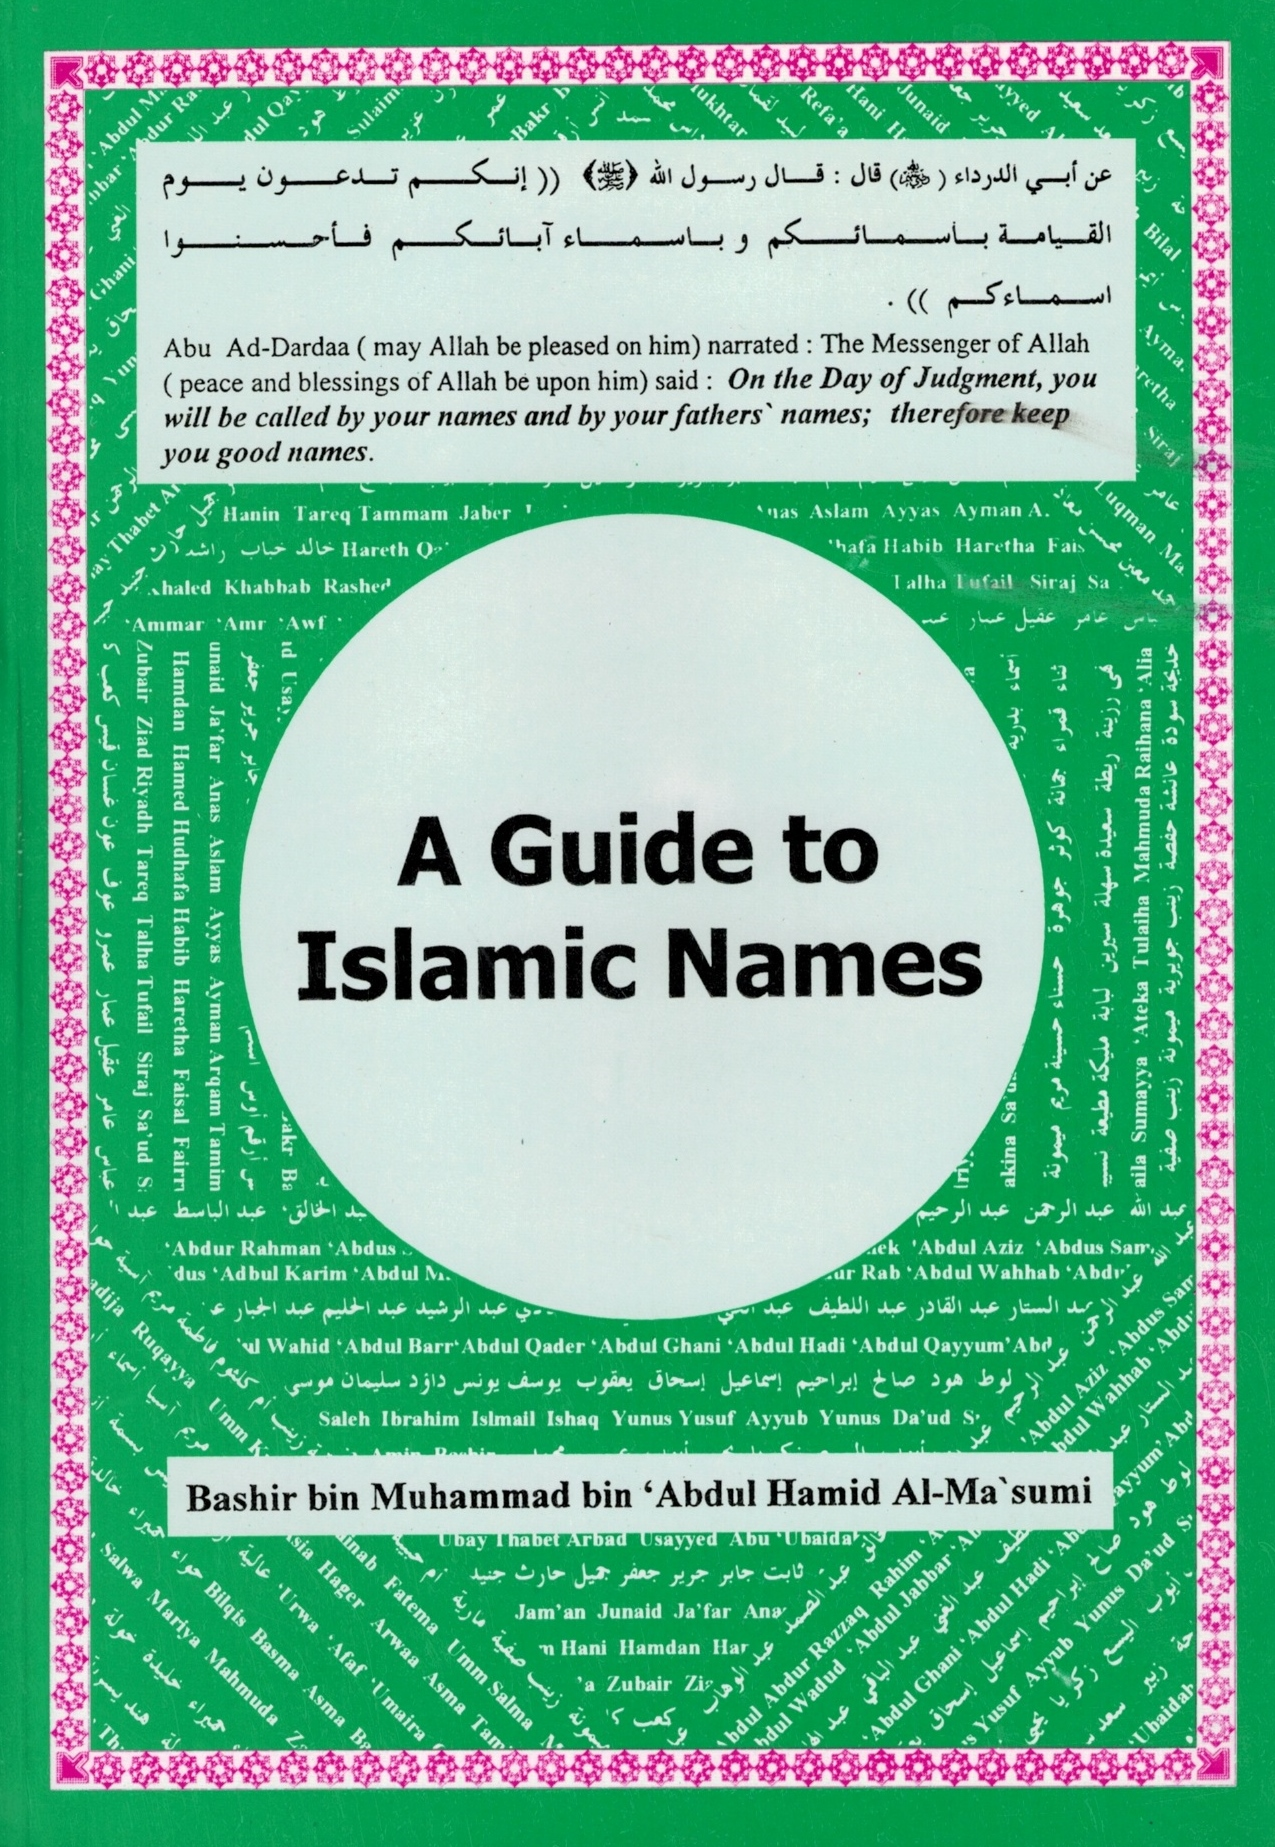 Guide to Islamic Names